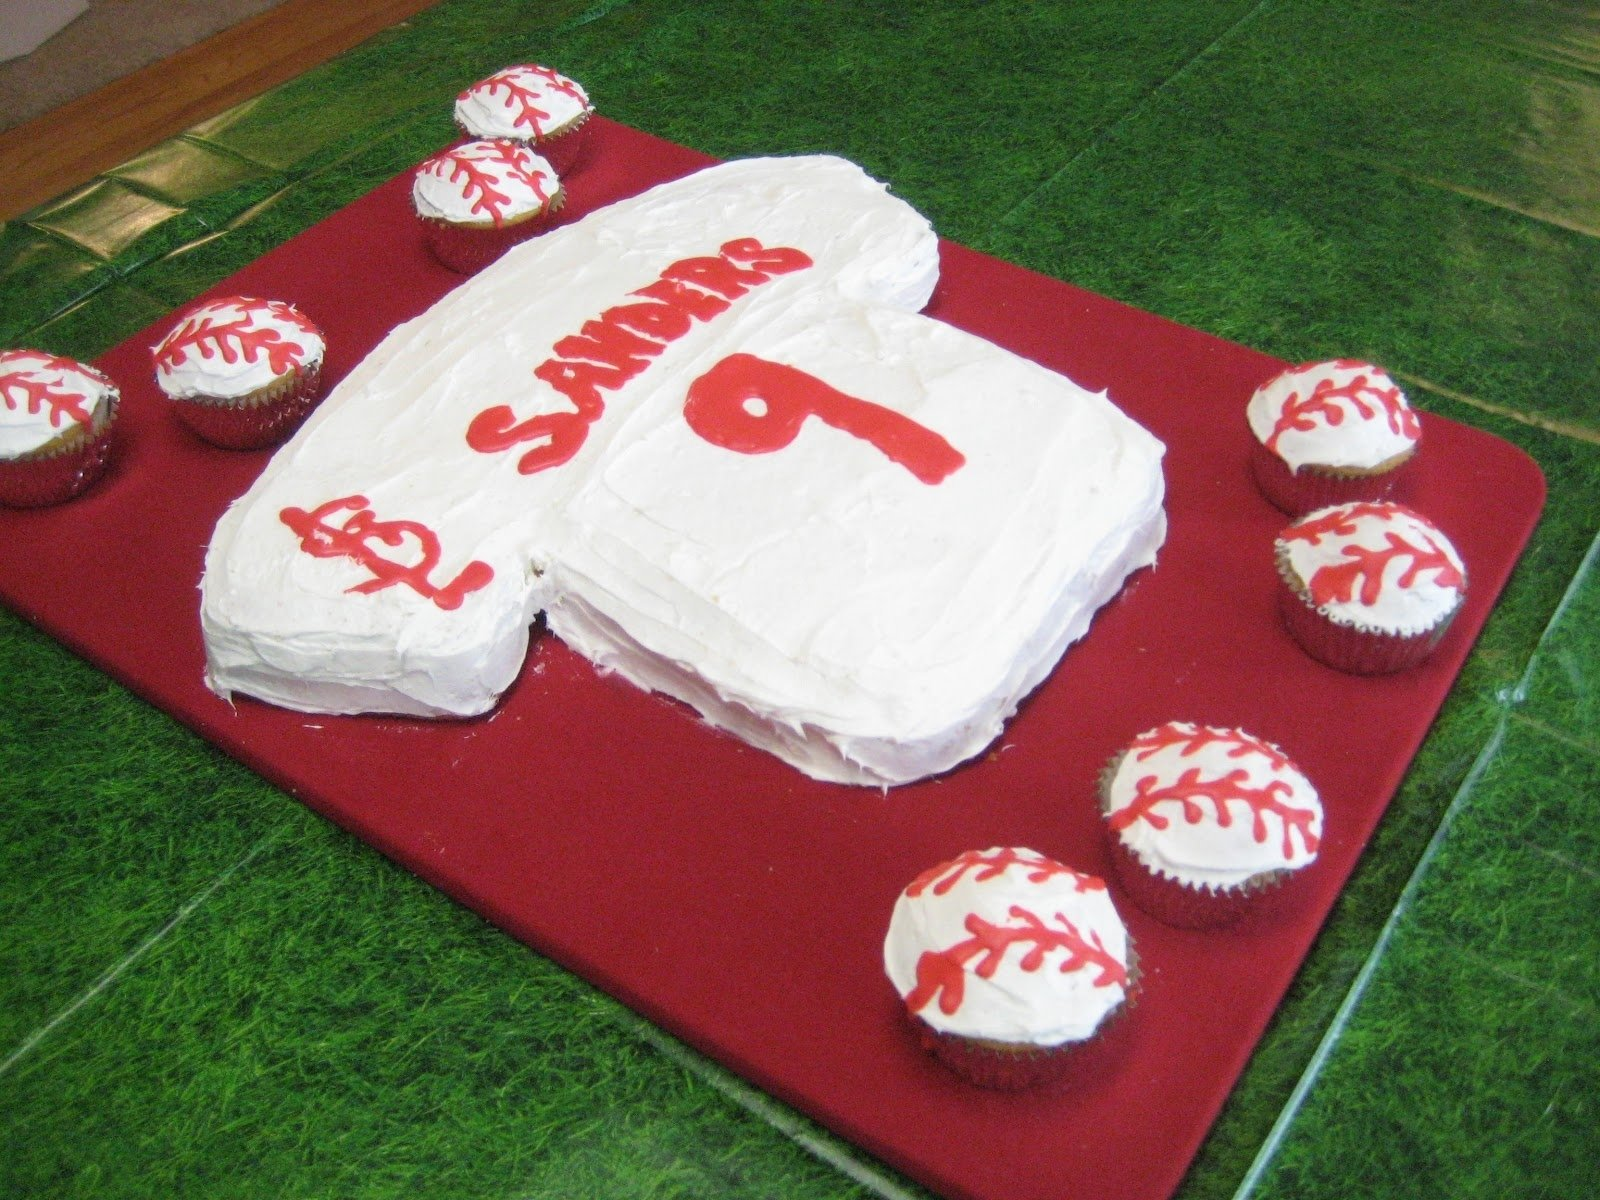 10 Stylish Birthday Party Ideas St. Louis family food creativity lets play ball st louis cardinals